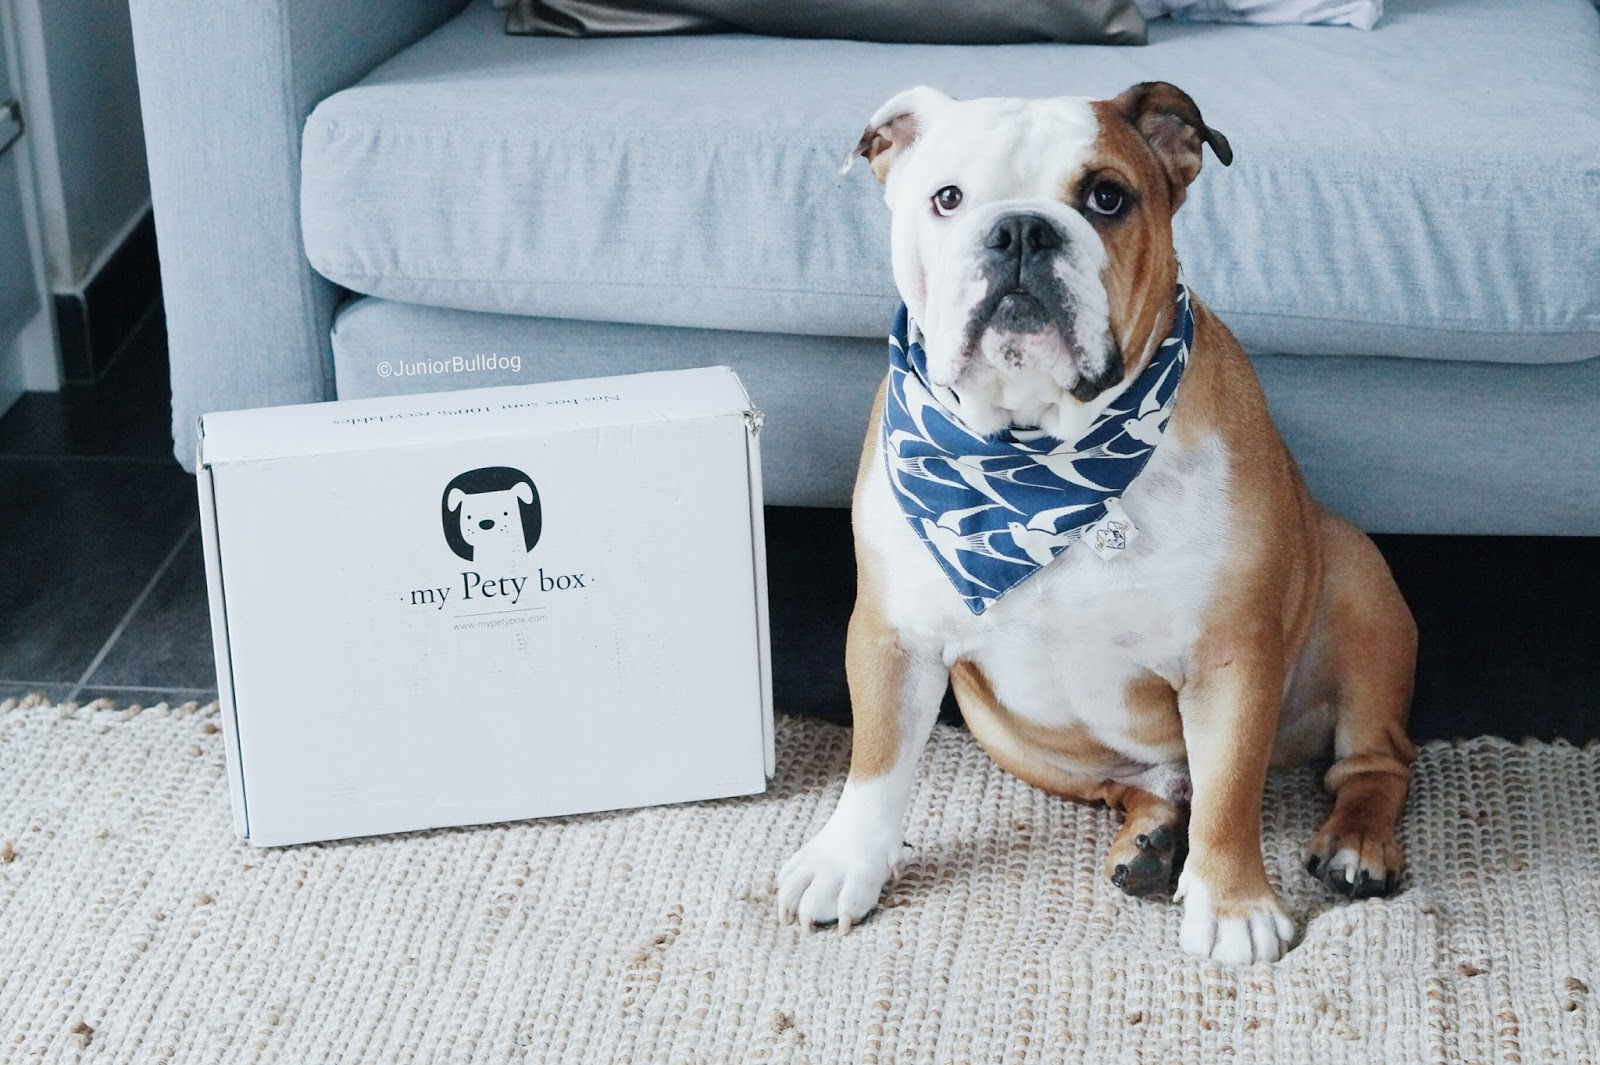 My Pety Box PetyBox MyPetyBox chien animalbox petbox bulldog anglais